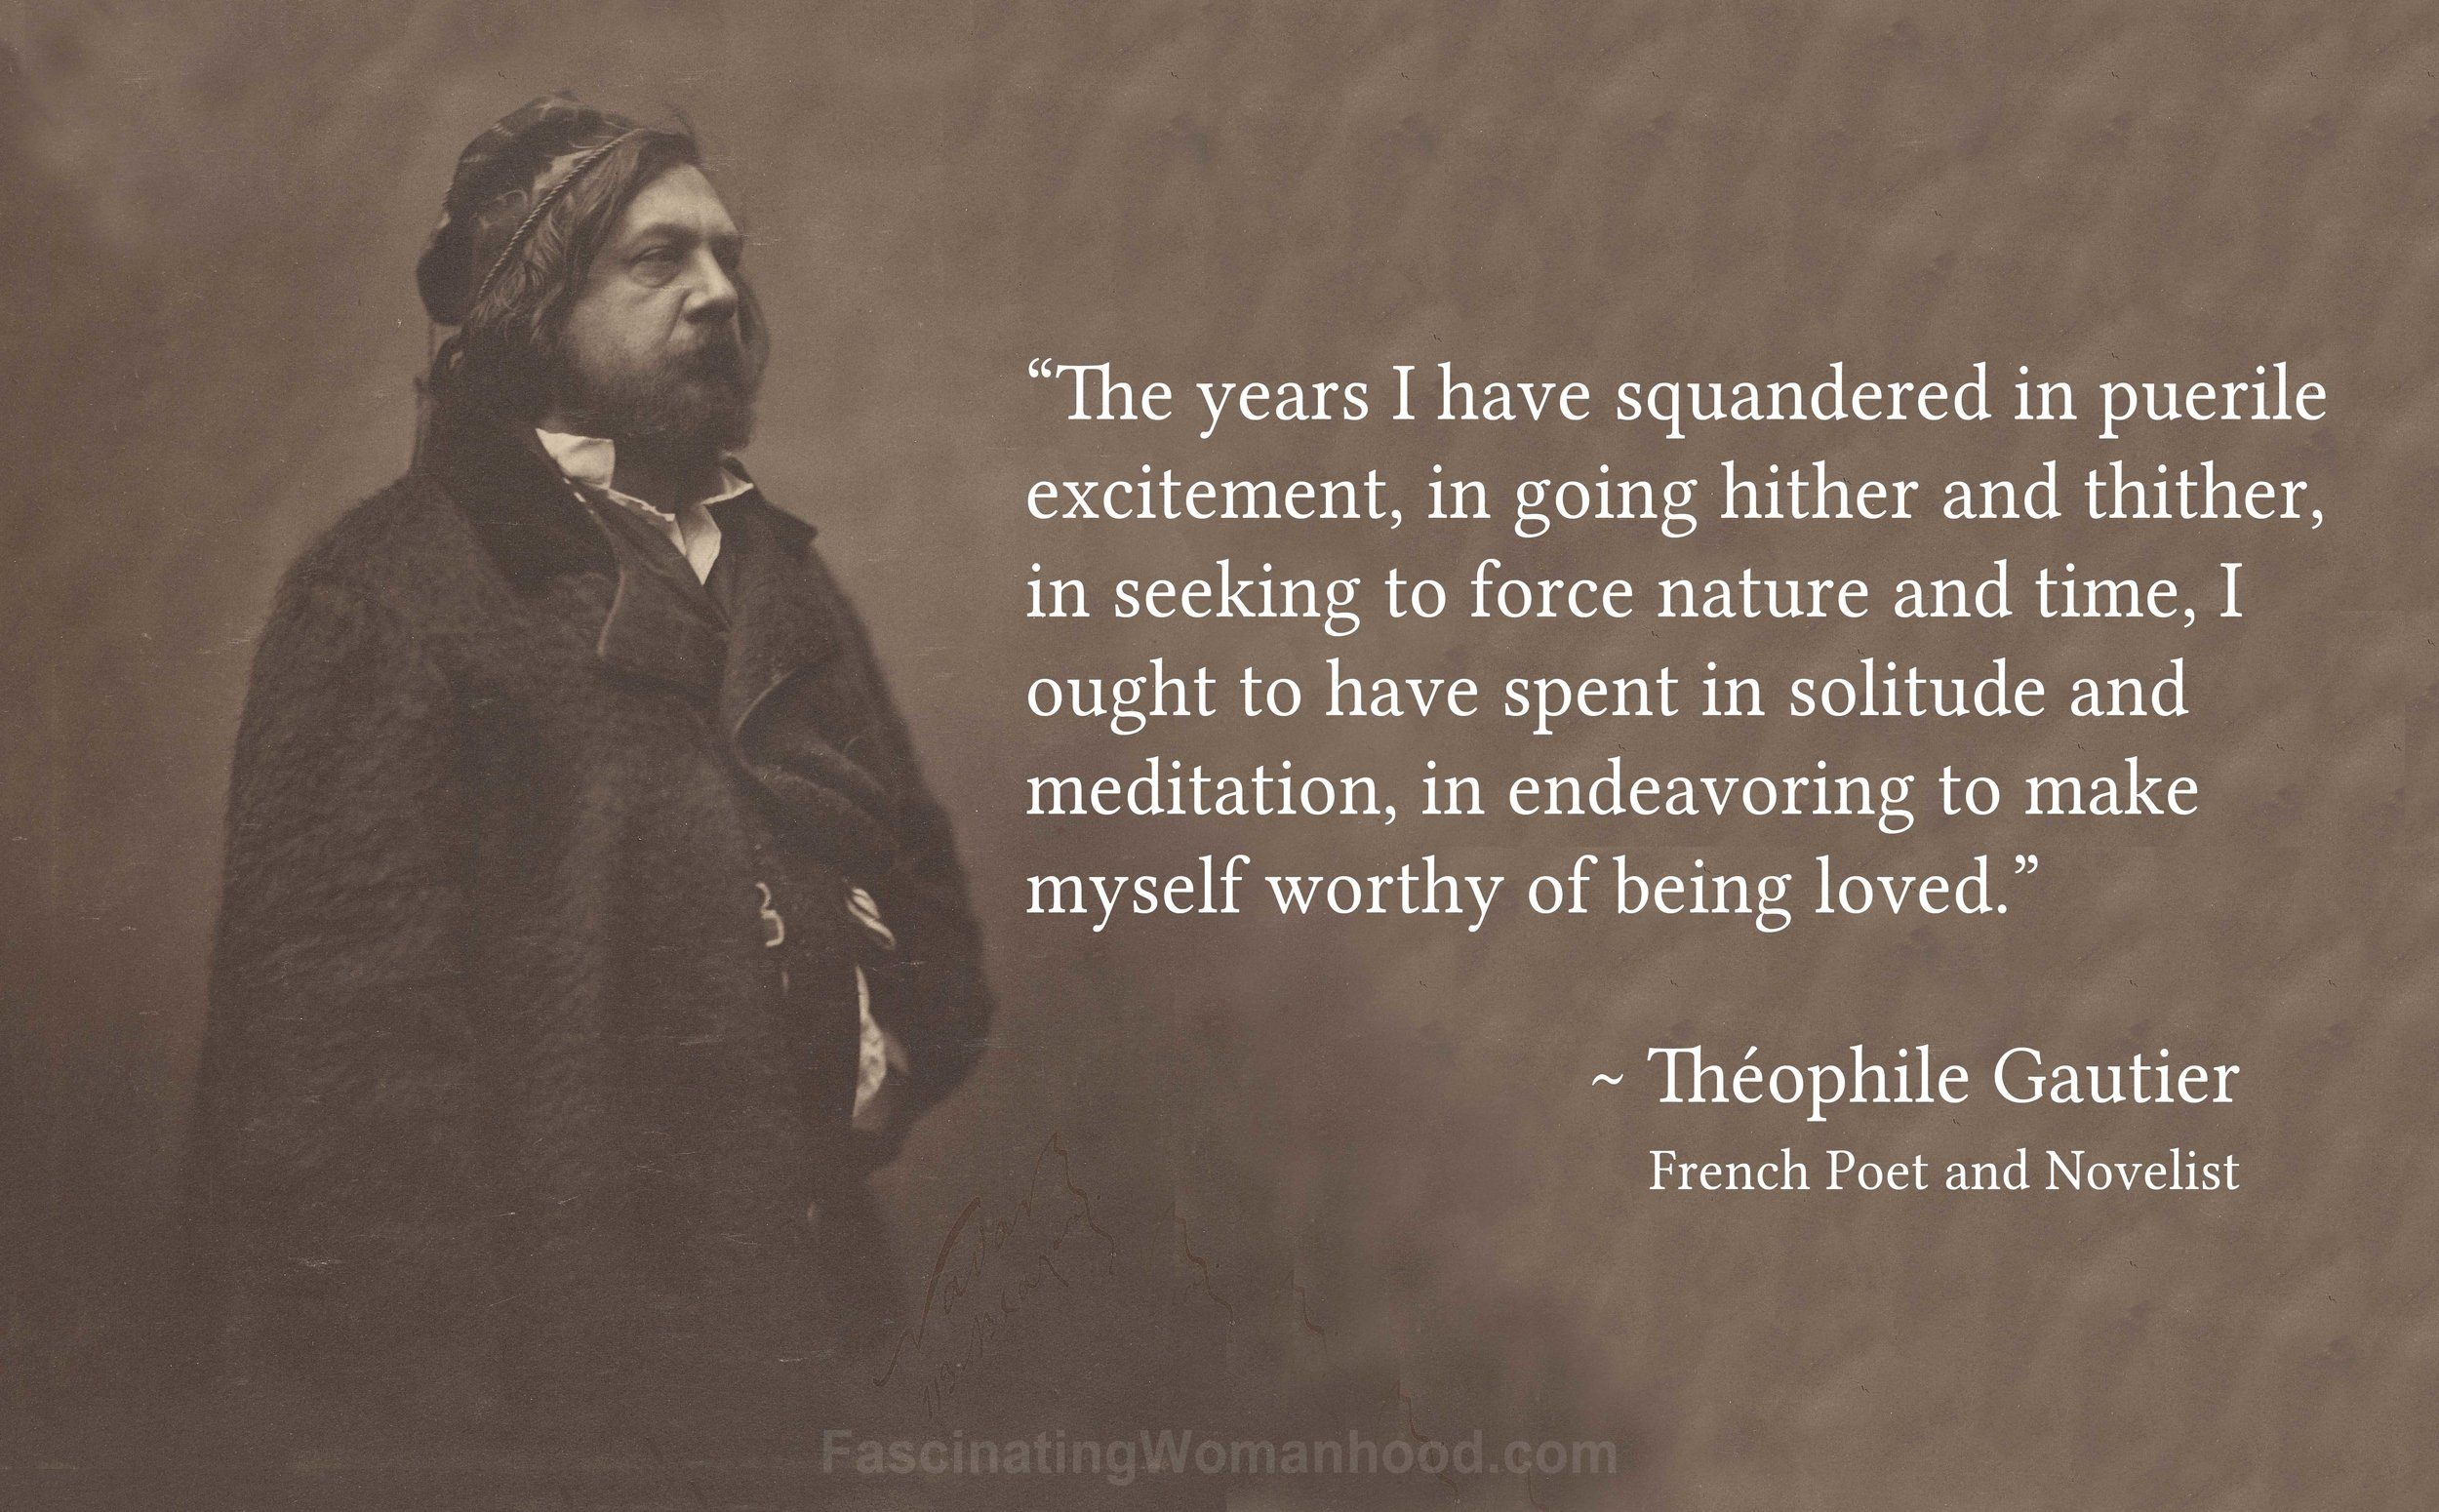 A Quote by Theophile Gautier.jpg